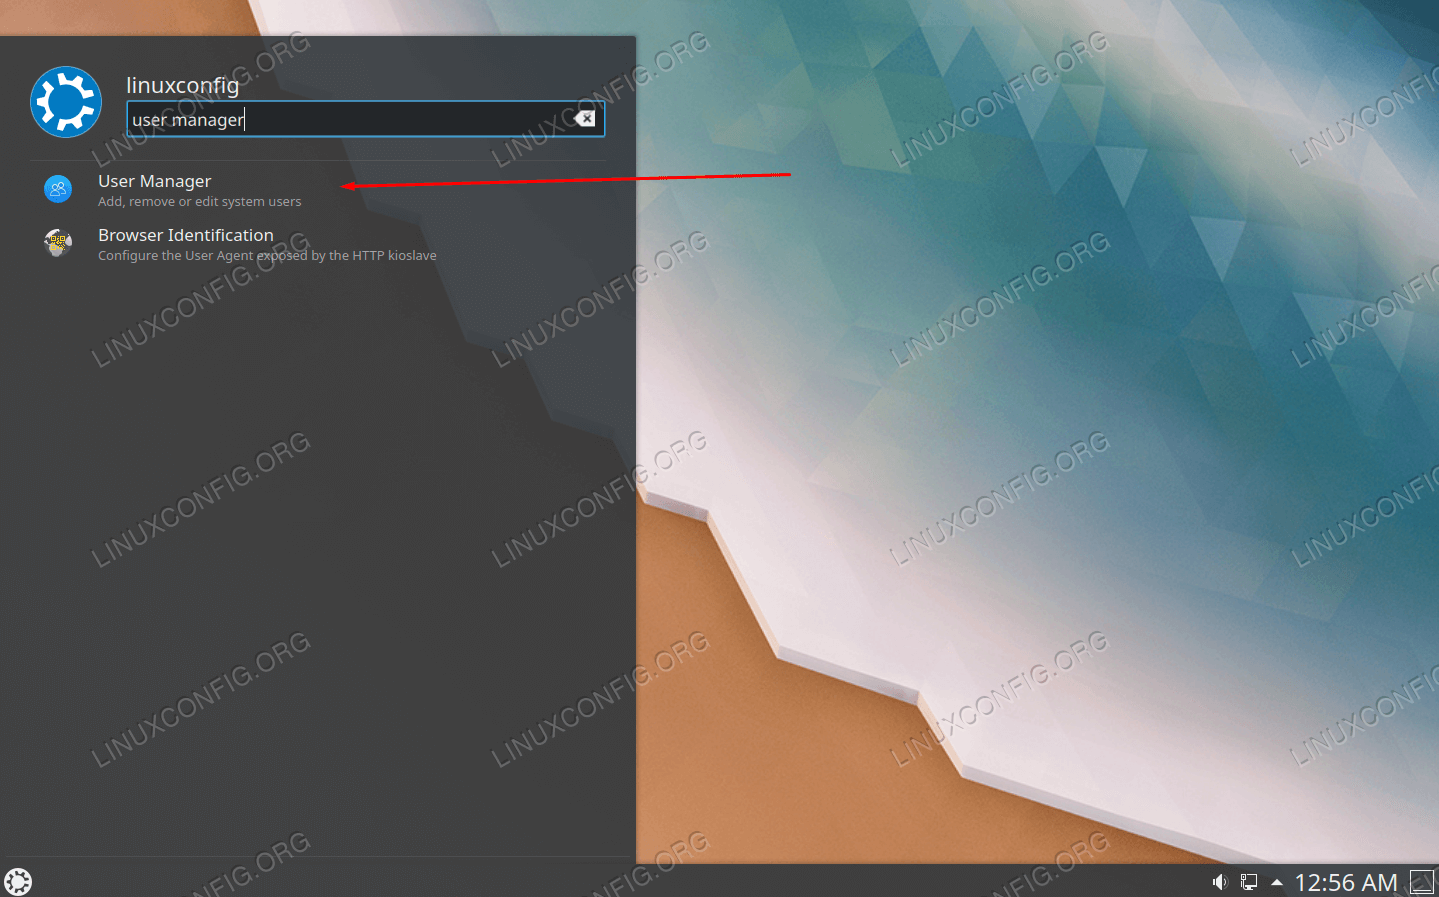 Search for User Manager in KDE